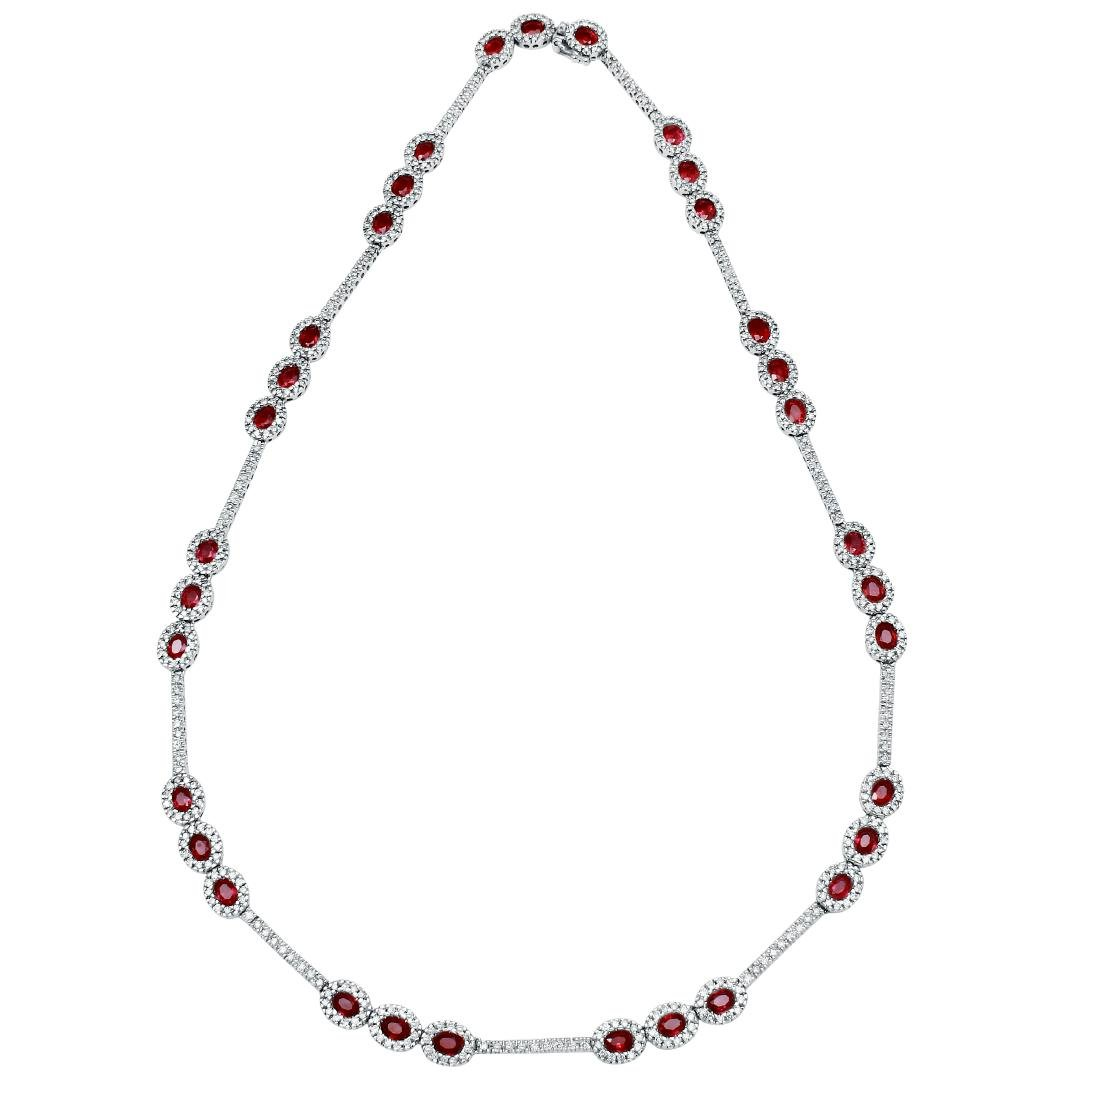 14KT White Gold Ruby Necklace